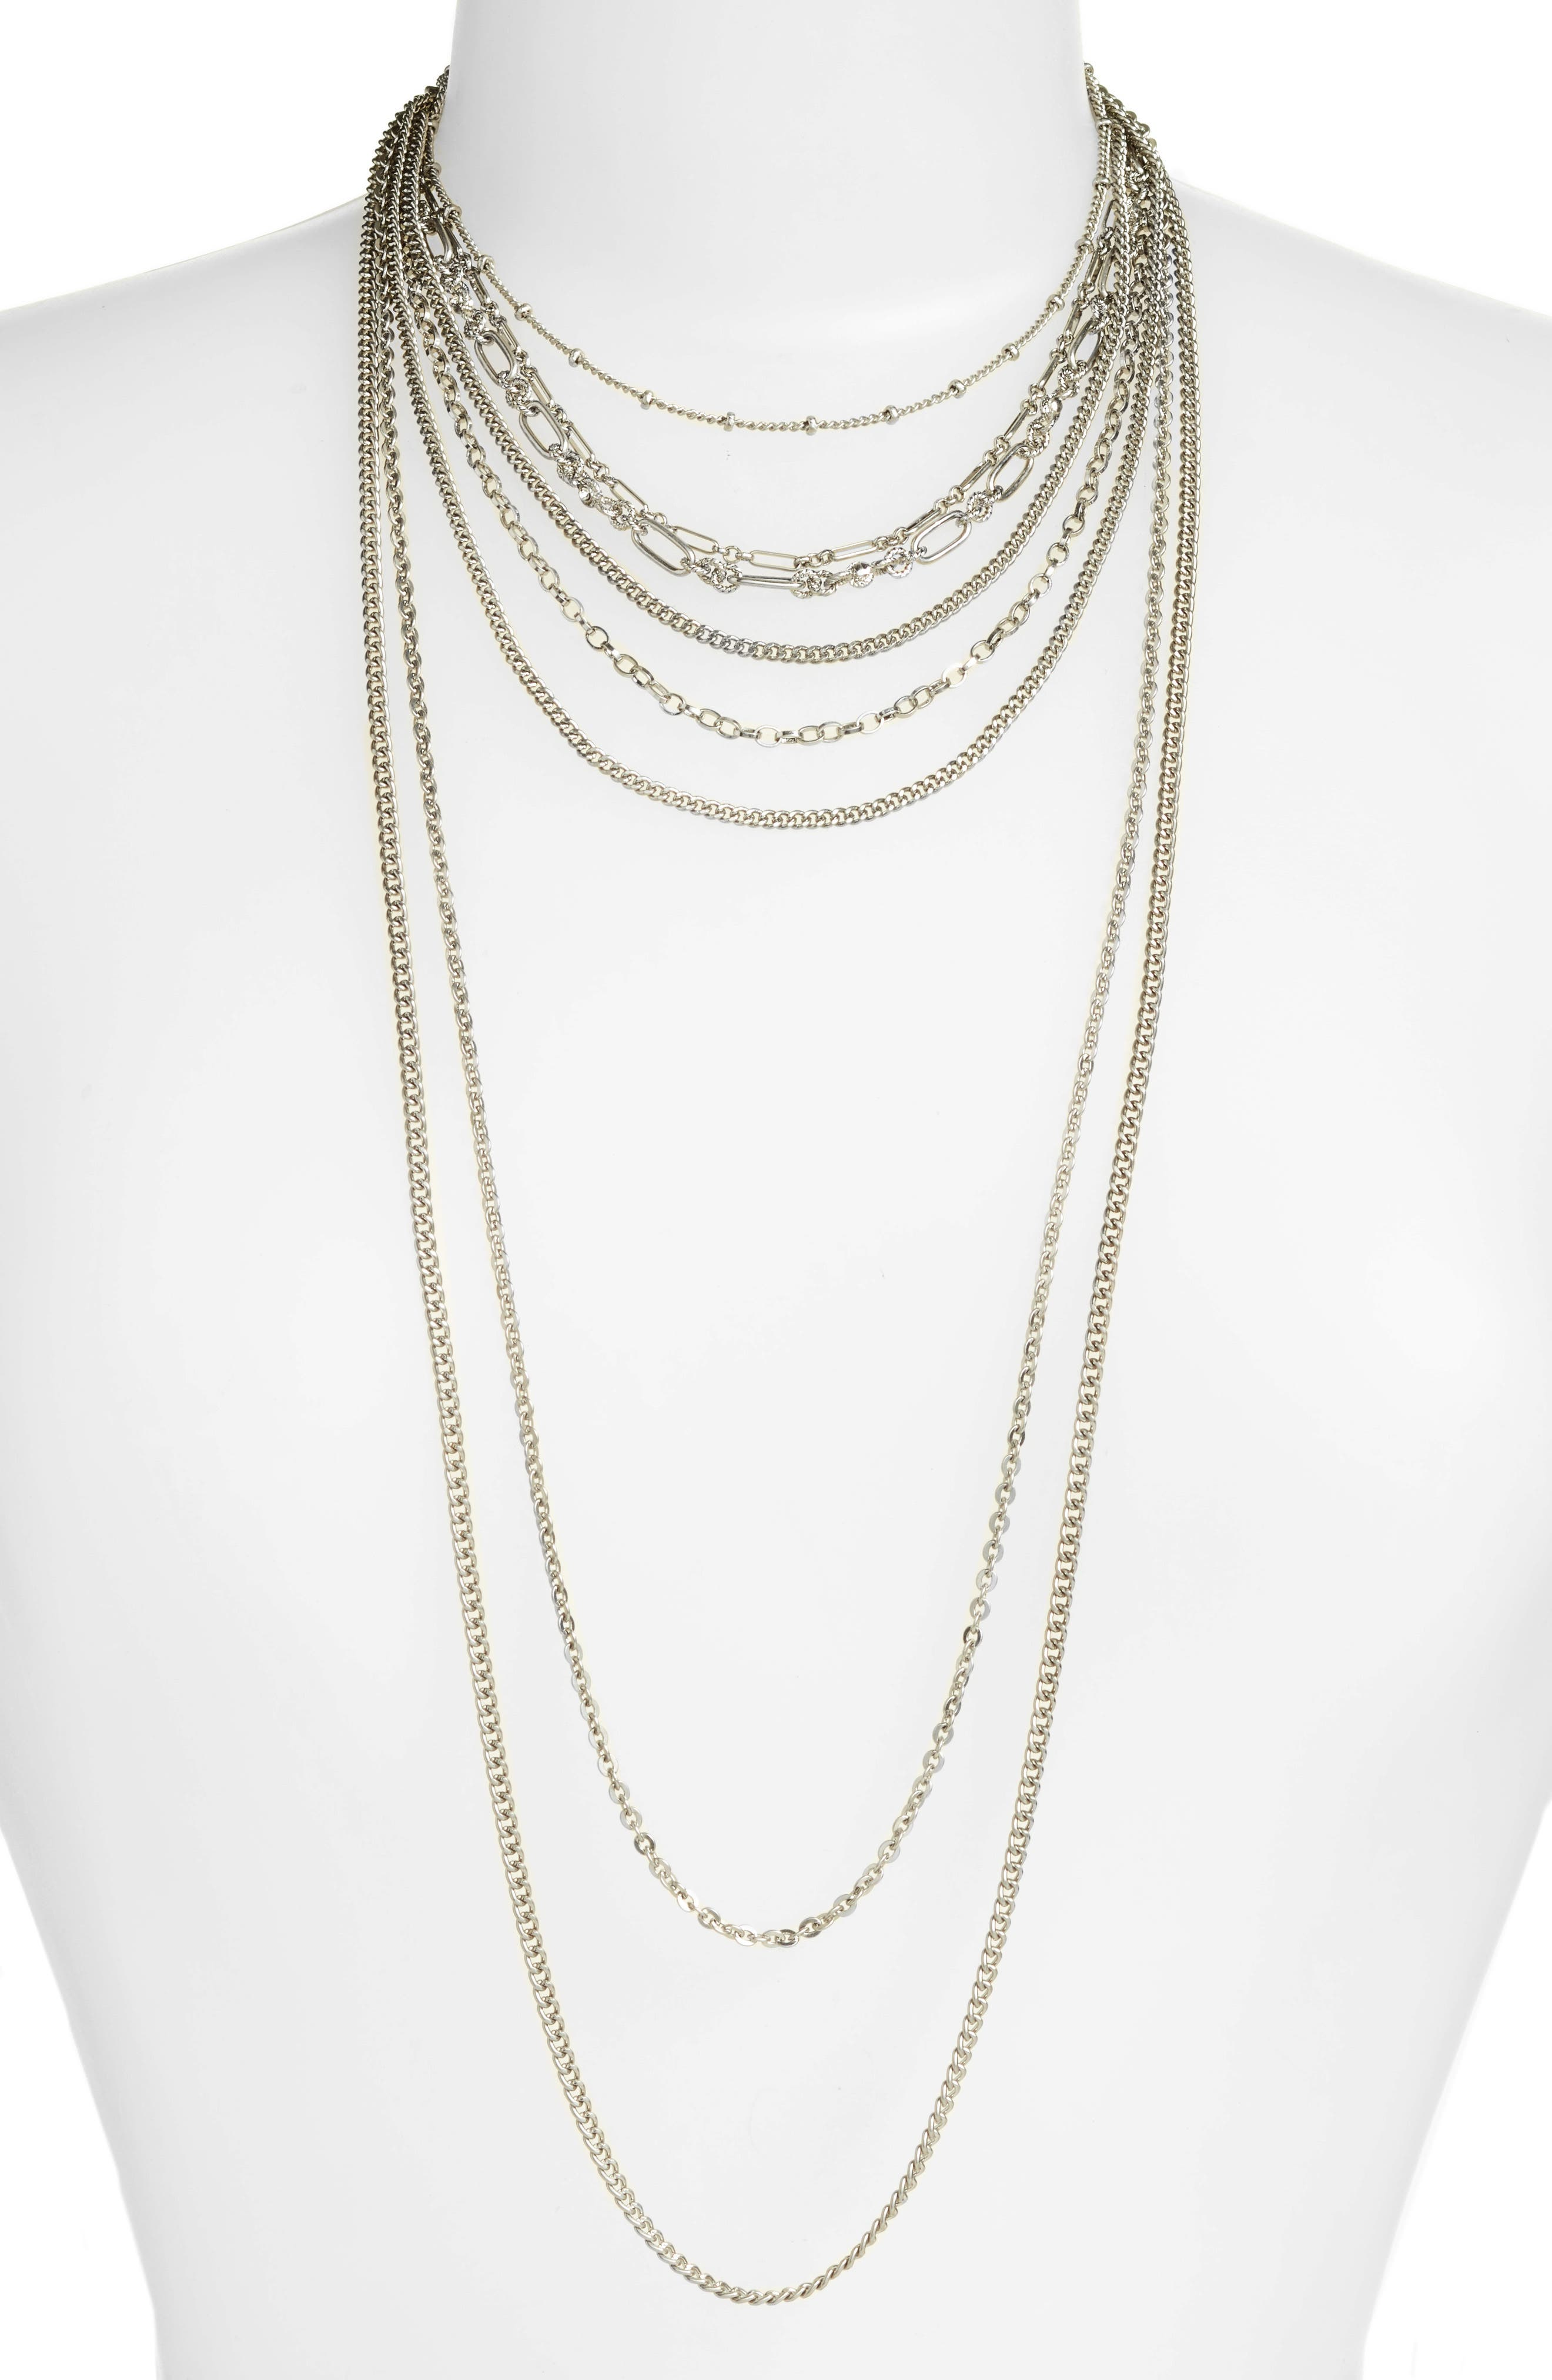 Main Image - Treasure & Bond Multistrand Textured Chain Necklace